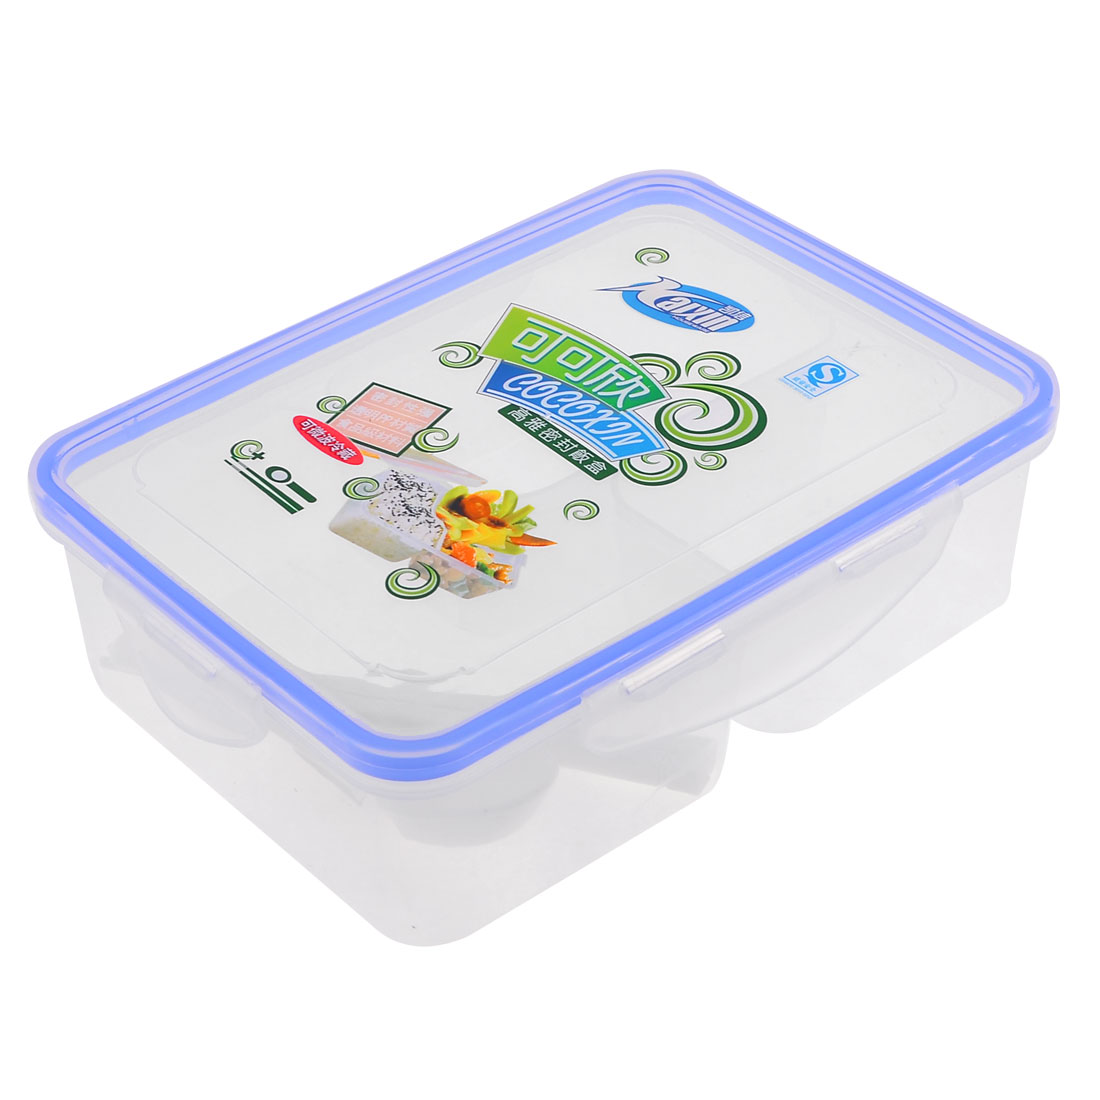 Portable Spoon Chopsticks Blue Clear 3 Compartments Traveling Lunch Box Holder